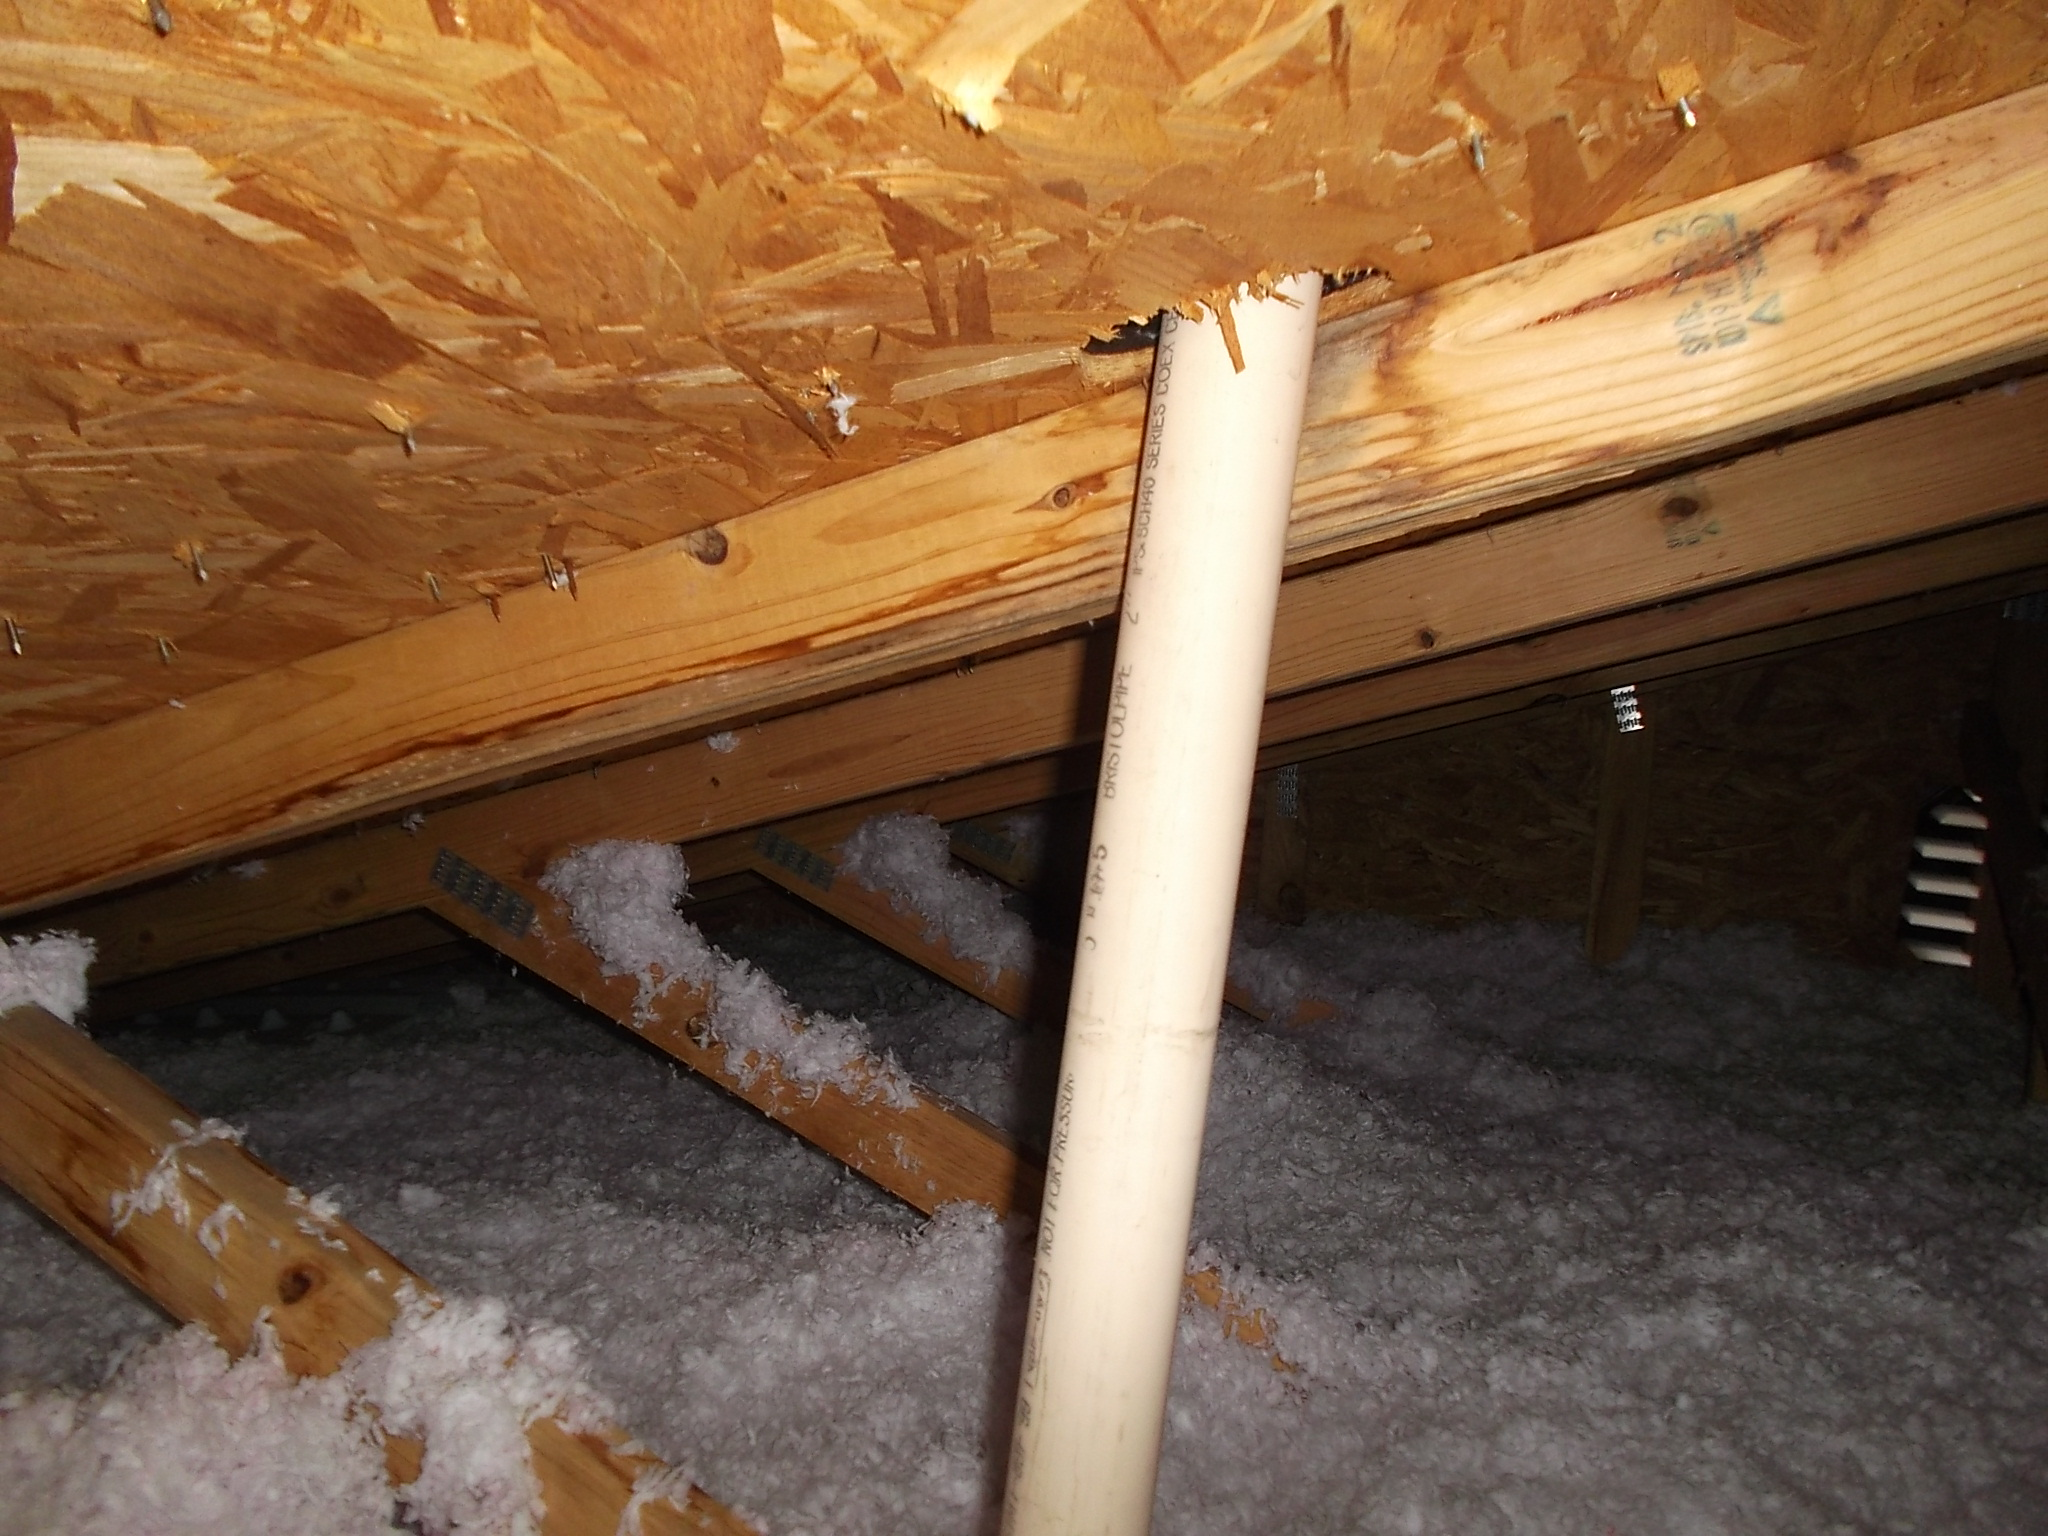 rotted roof vent allowing water in attic